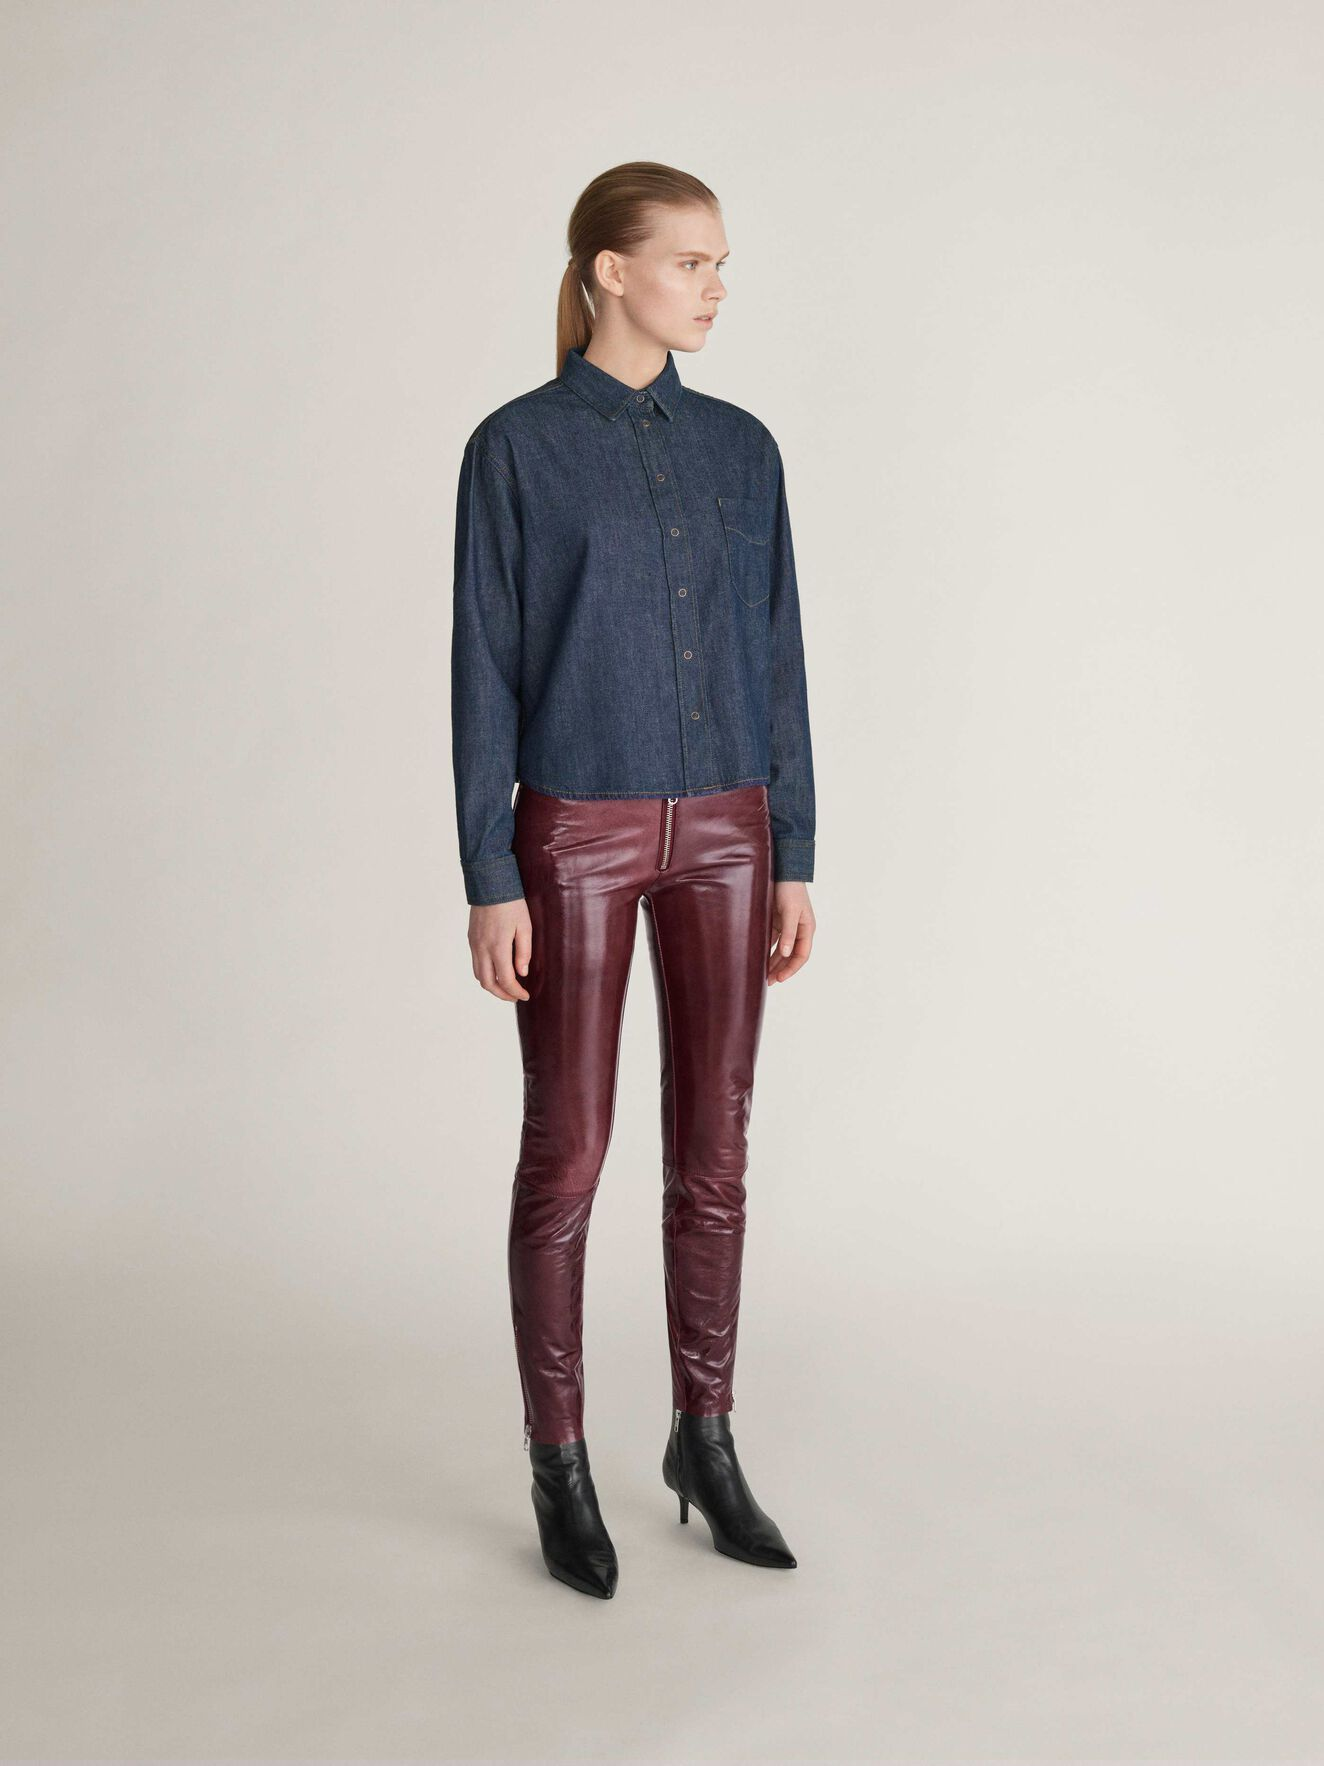 Haste Bluse in Midnight blue from Tiger of Sweden